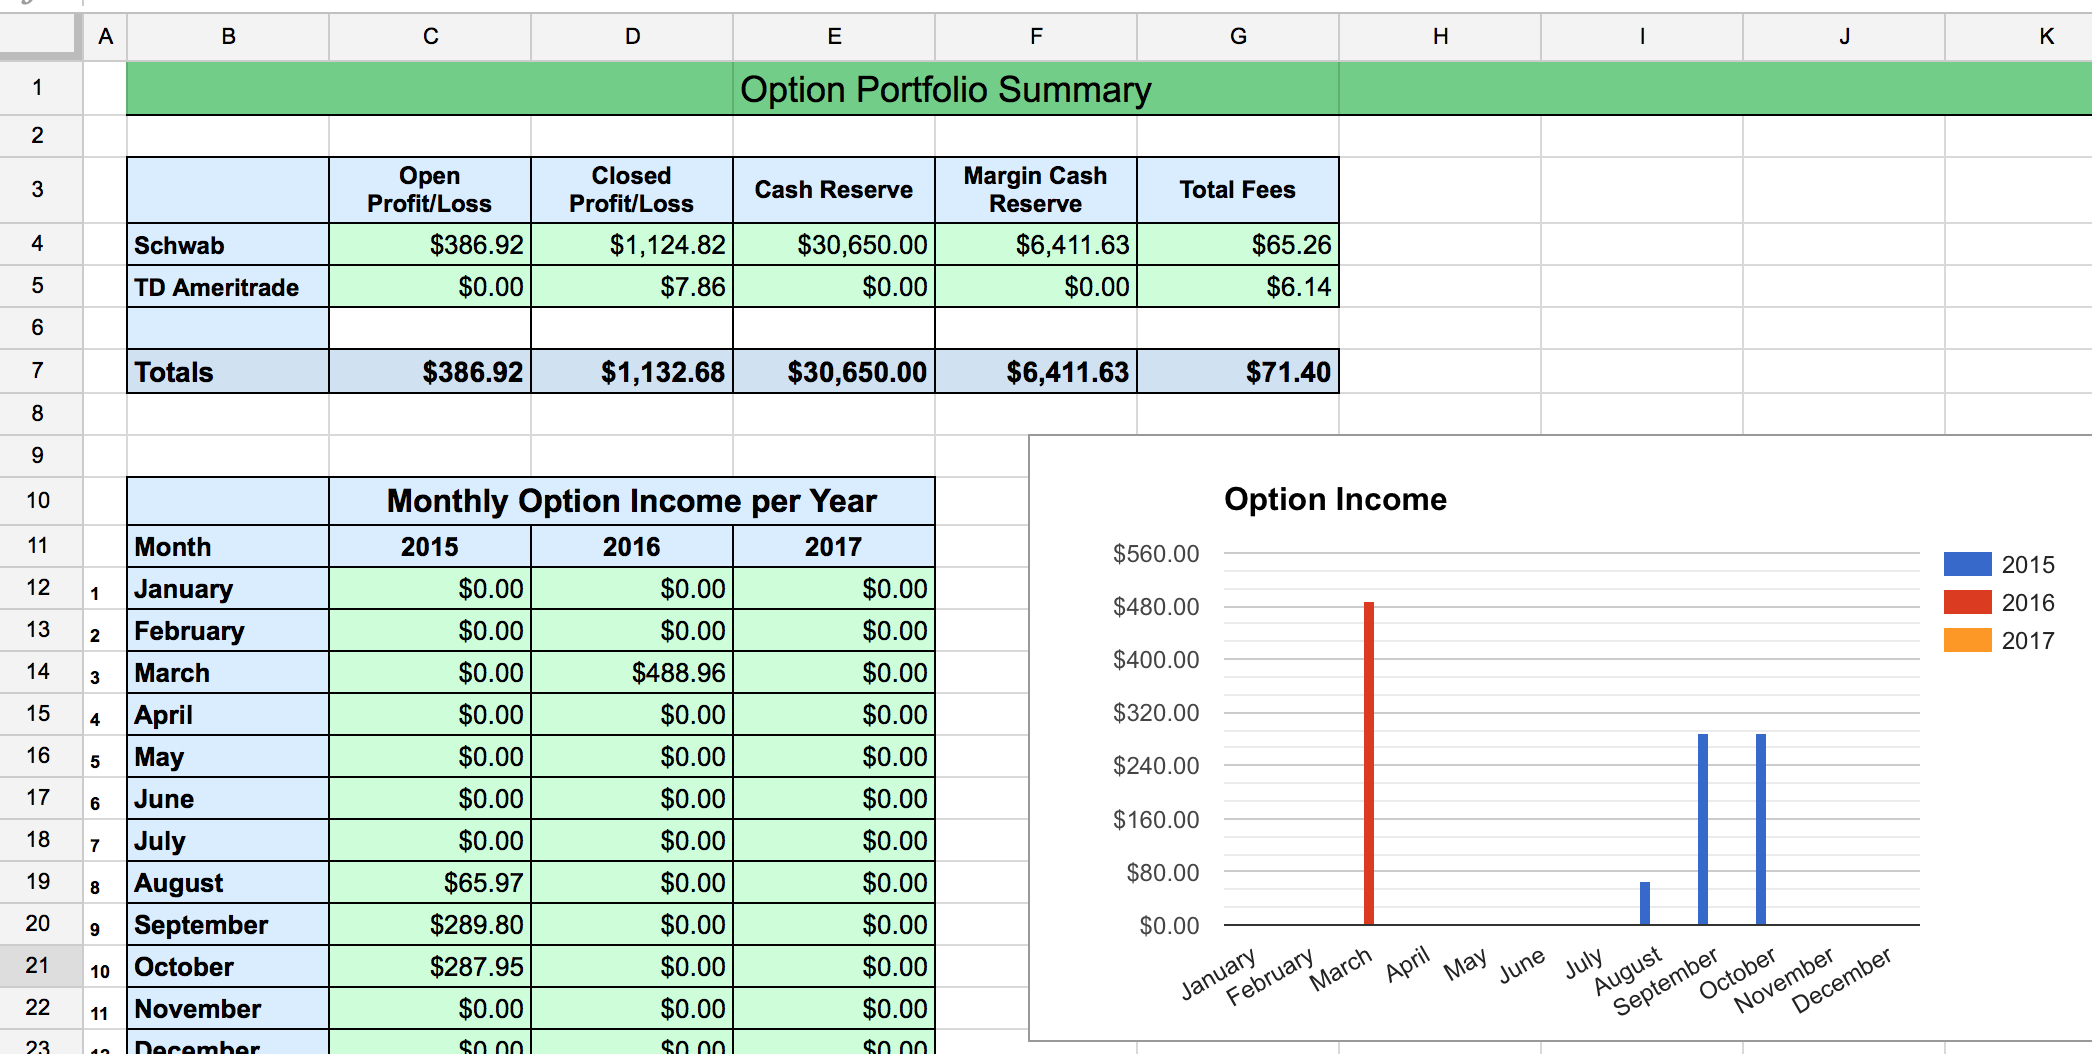 Annualised Hours Spreadsheet Inside Options Tracker Spreadsheet – Two Investing Annualised Hours Spreadsheet Printable Spreadshee Printable Spreadshee annualised hours spreadsheet